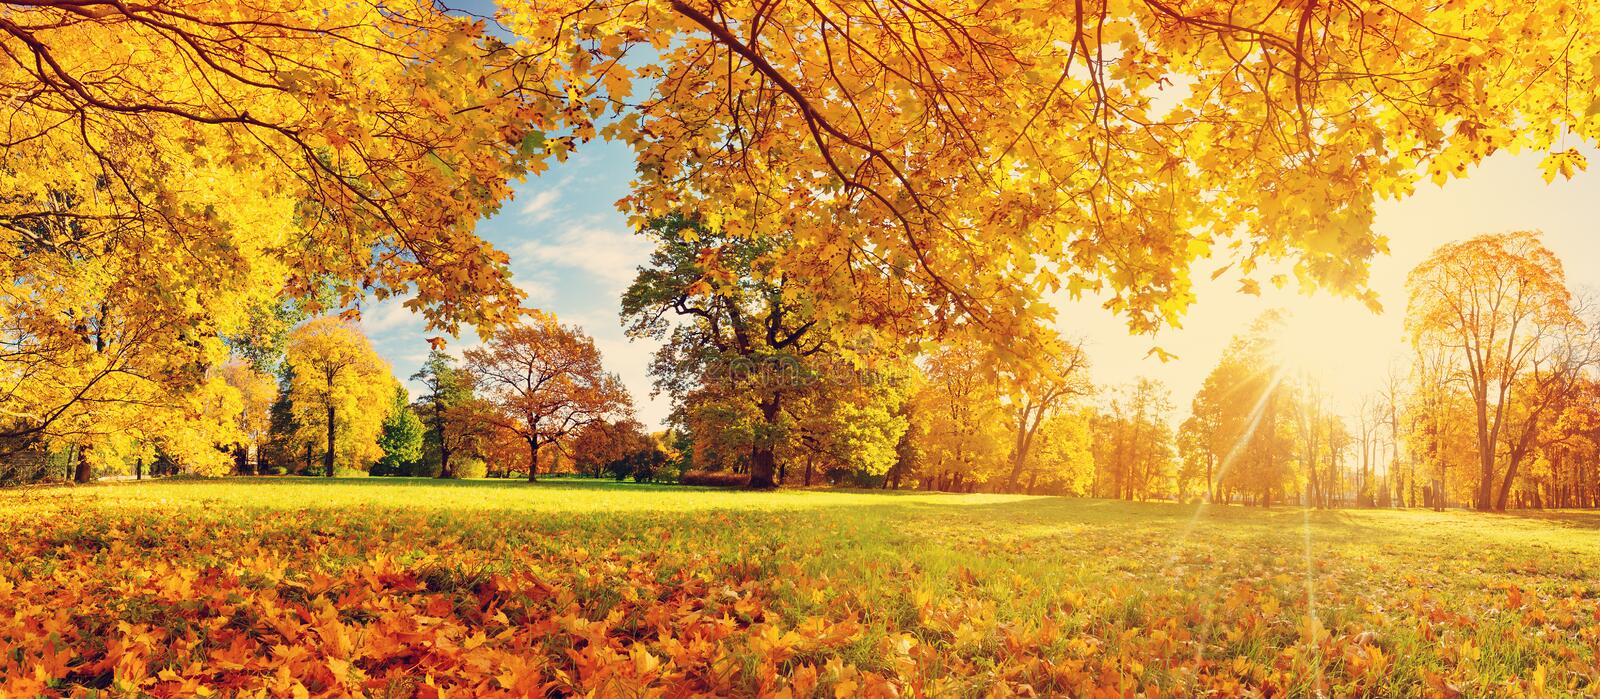 Trees on the field in autumn royalty free stock image